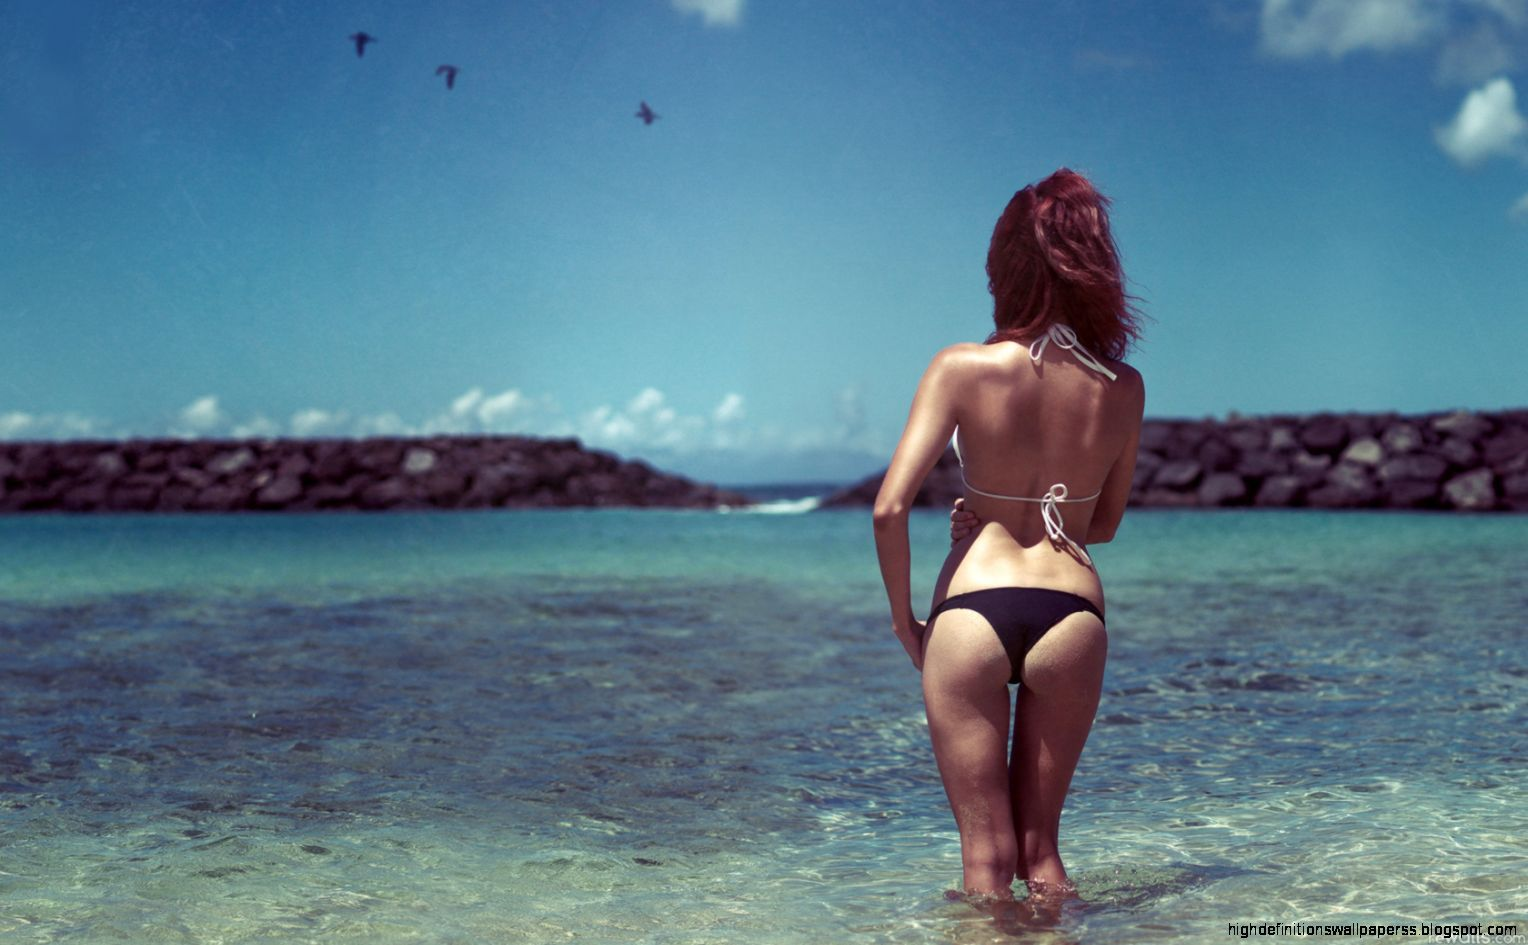 beach girl wallpapers, 100% quality hd beach girl wallpapers f